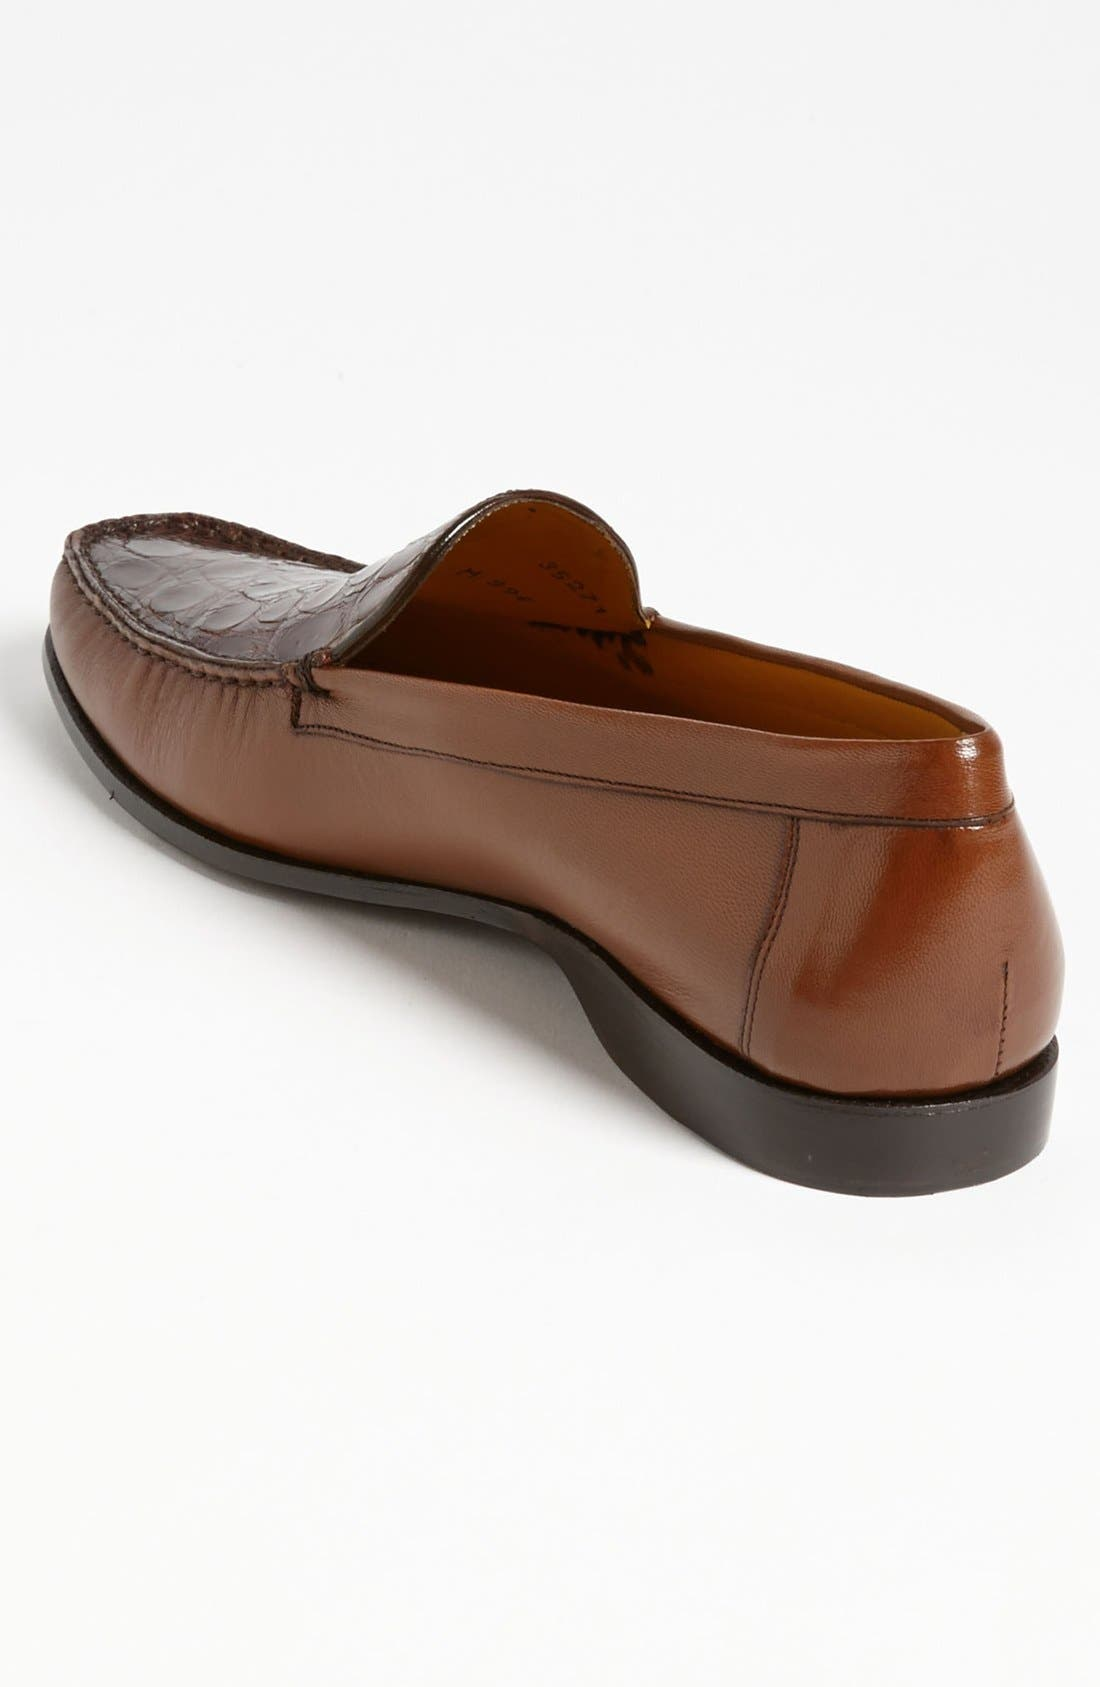 'Costanzo' Loafer,                             Alternate thumbnail 2, color,                             Sport